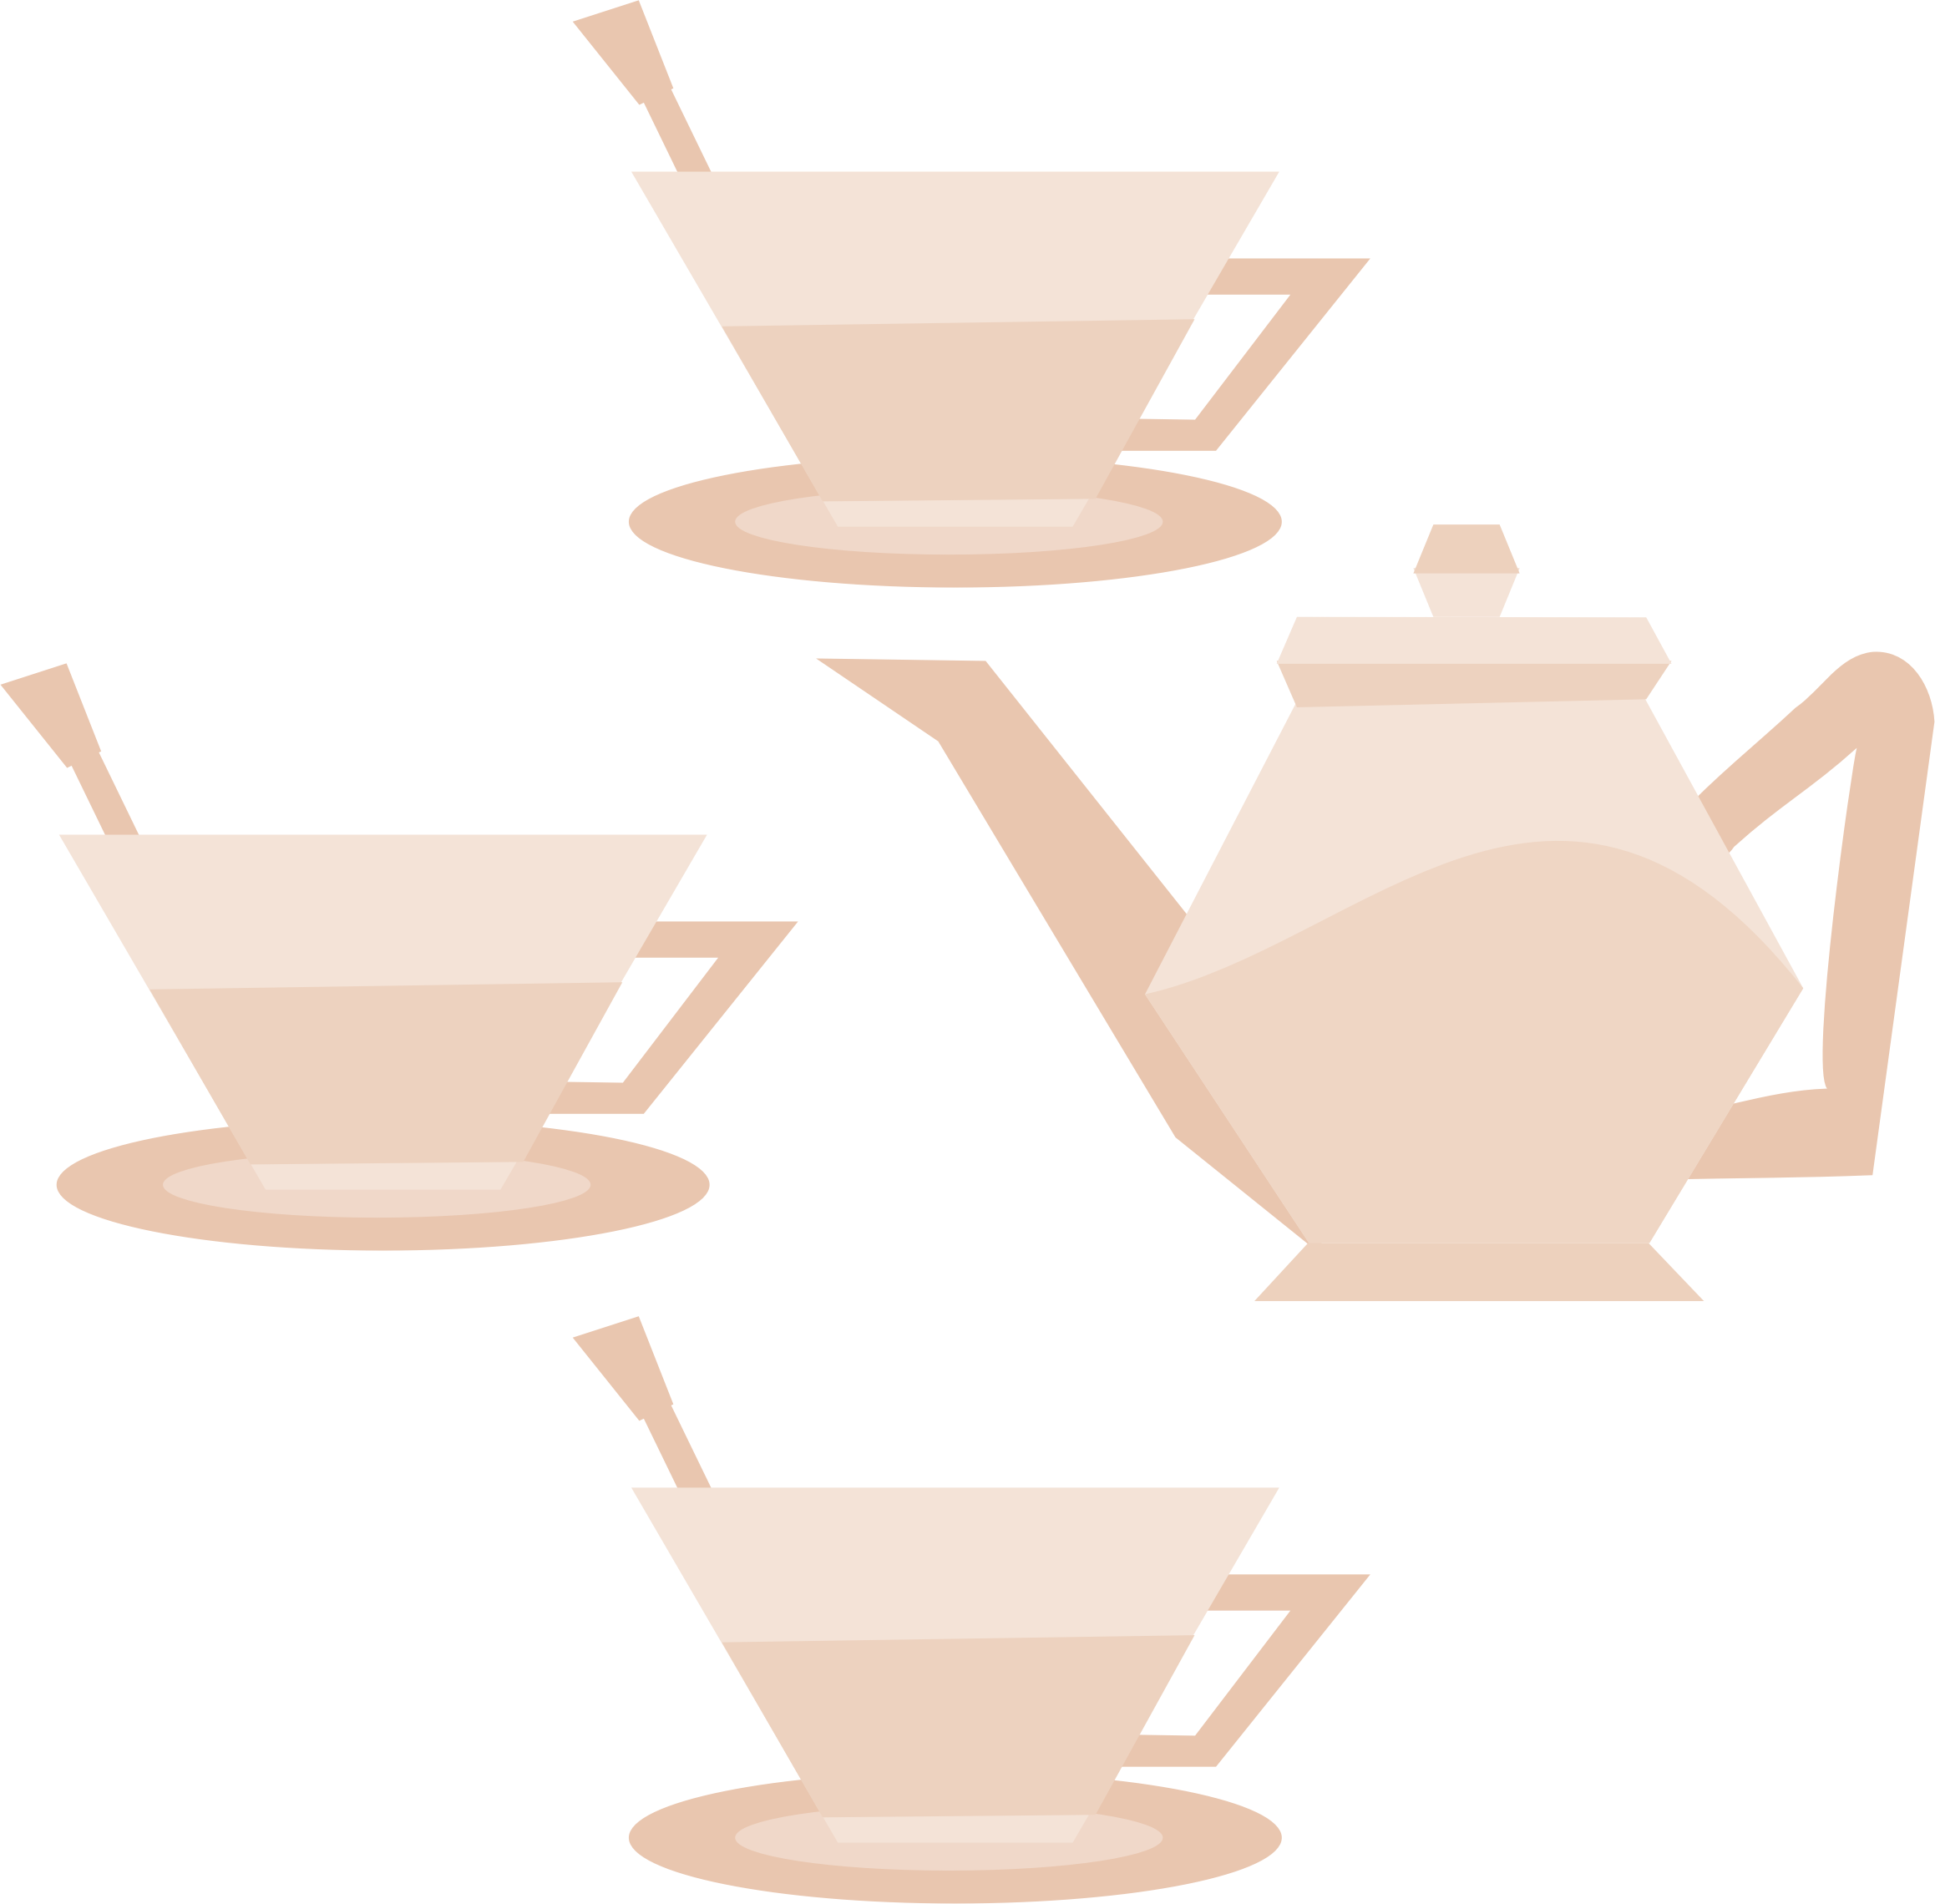 Tea party png. Clipart background big image